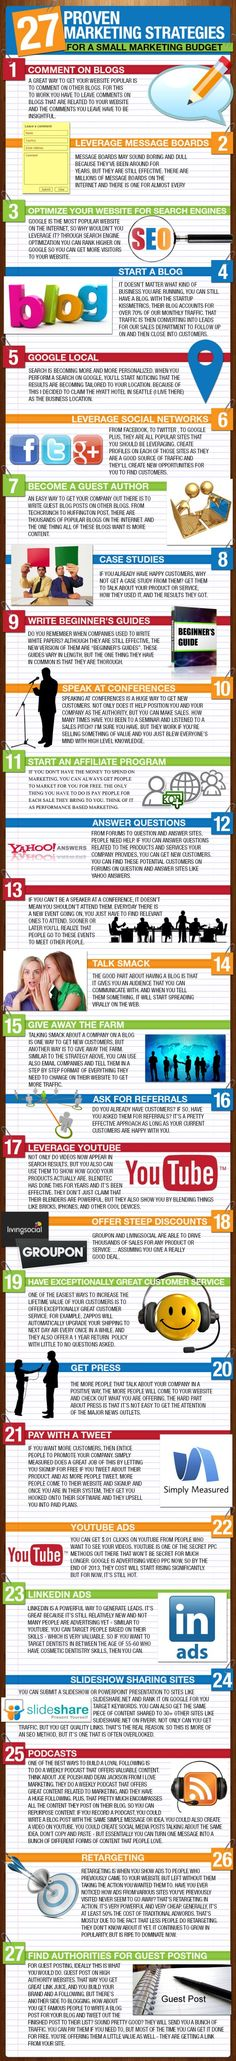 27 Proven Marketing Strategies to Double Your Traffic in Under 30 Days -www.letsgetoptimized.com